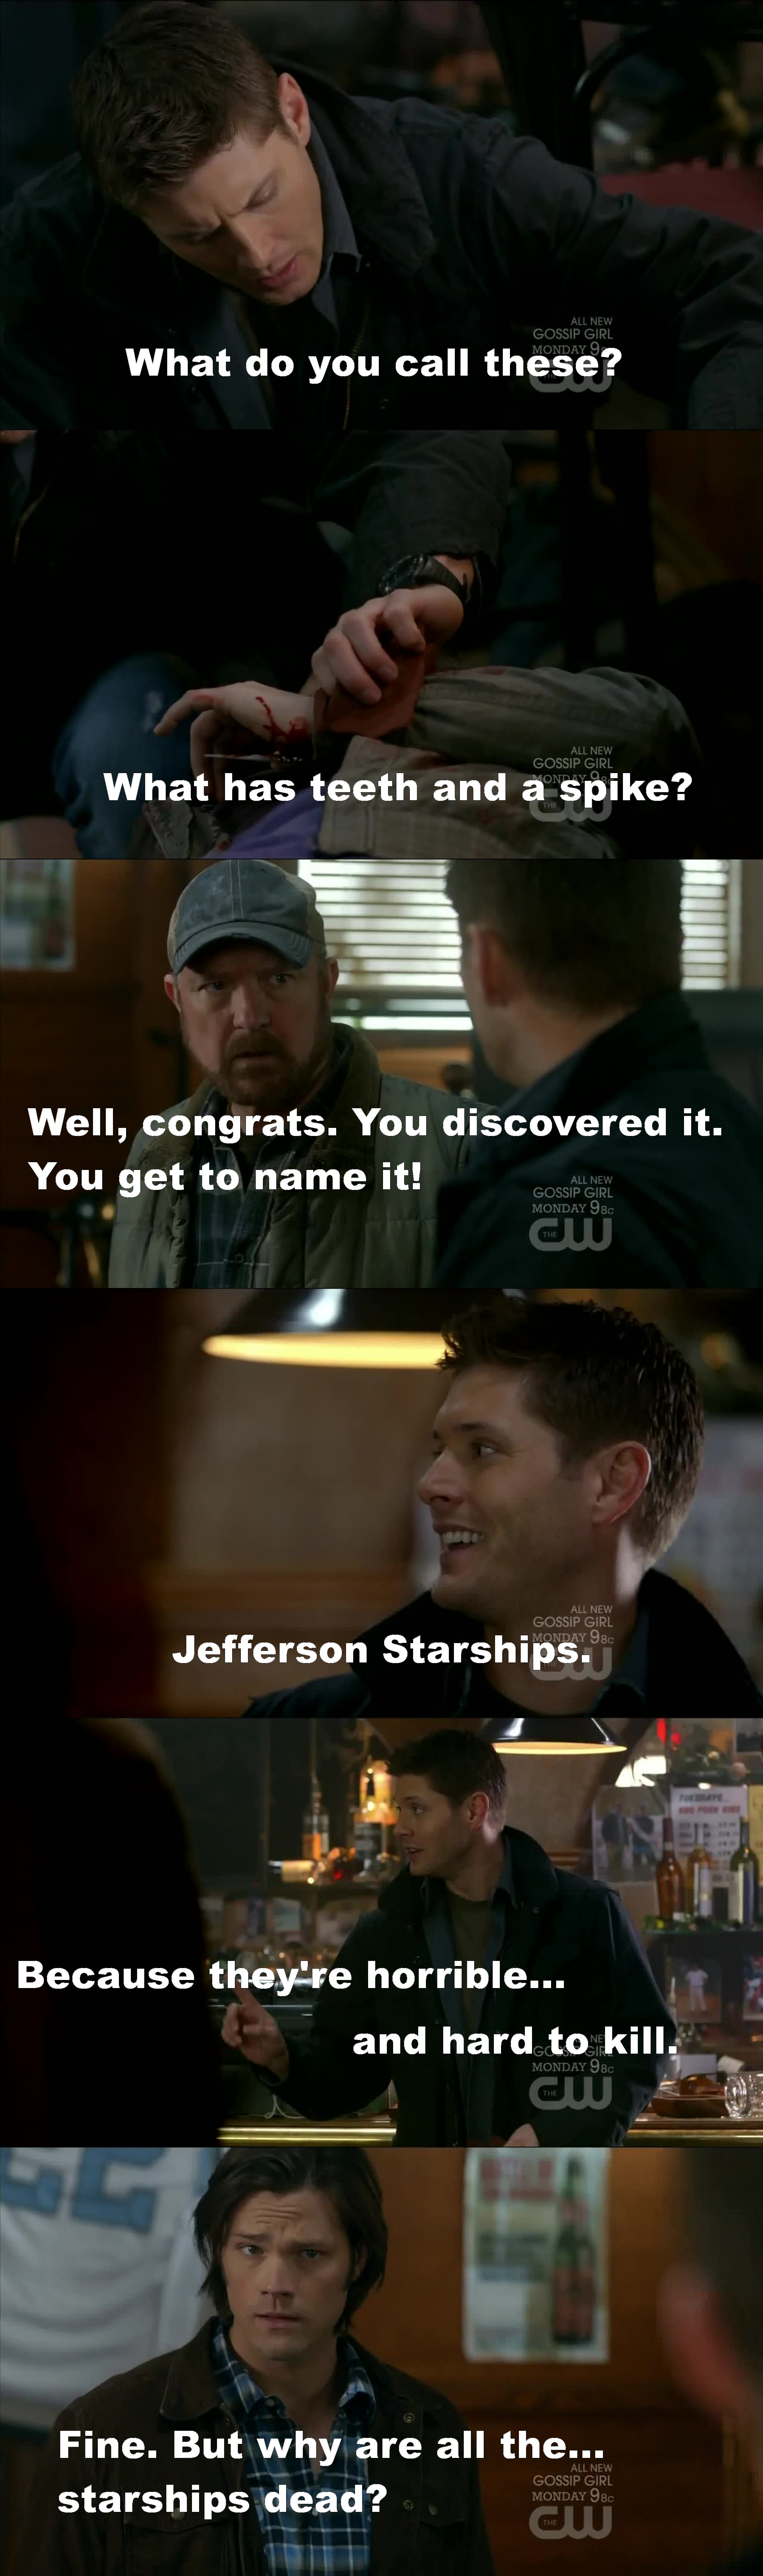 Seriously? Only me who laughed at this? Am I that old?? I couldn't stop laughing every time they actually said starships! It was too funny! I love Dean's grin! ^_^